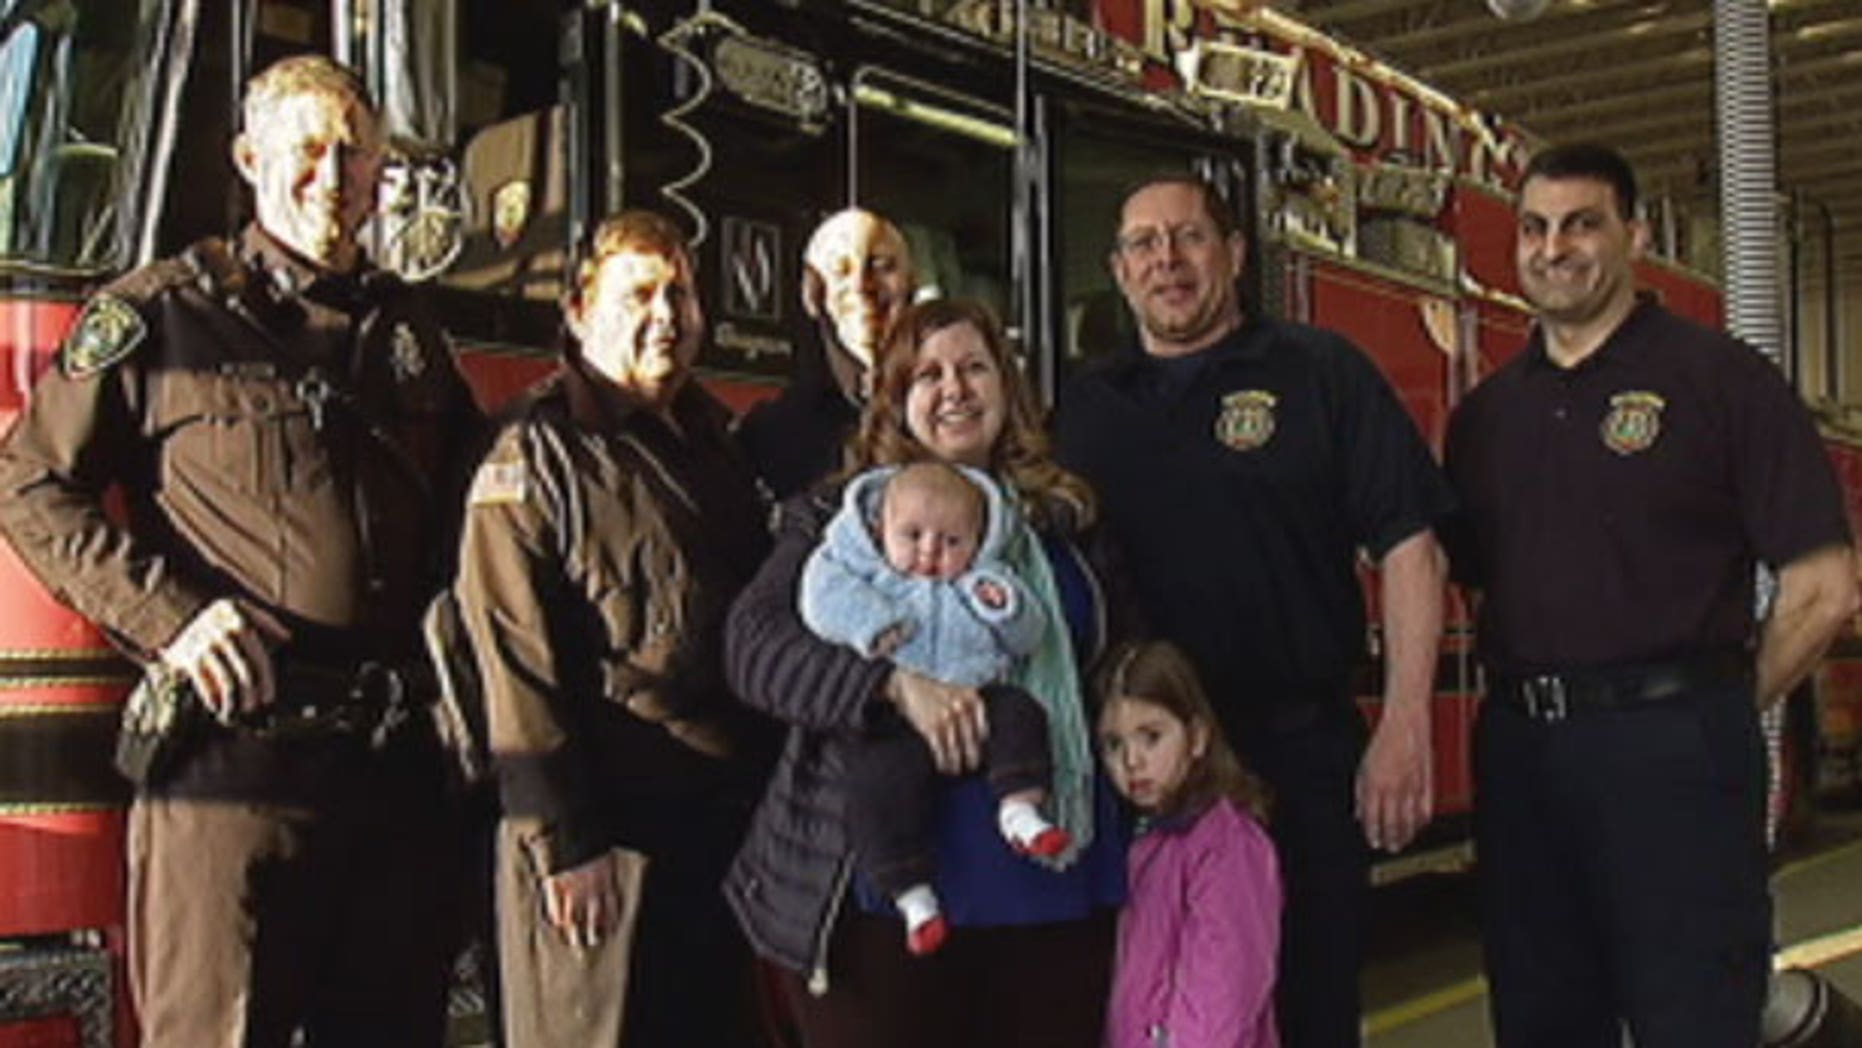 This photo shows Massachusetts firefighters and the family they rescued from a jammed elevator.